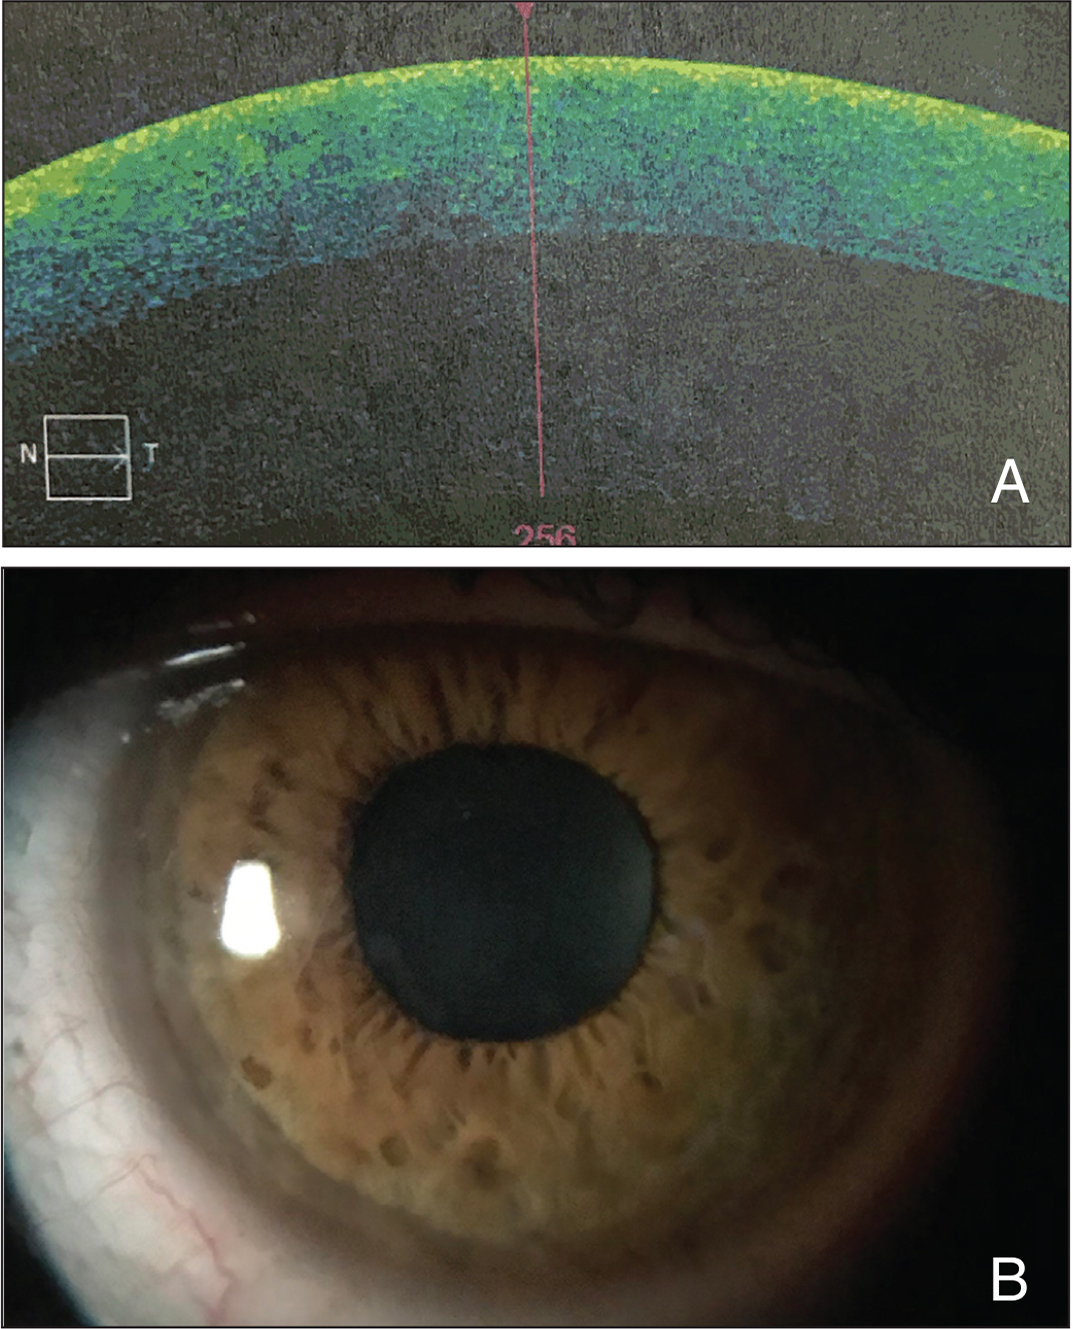 (A) A 3-month postoperative section of the cube mode (4 × 4 mm) of Zeiss Cirrus optical coherence tomography (Carl Zeiss Meditec AG) showing complete resolution of the lesion. (B) Slit-lamp photograph of the cornea at 3 months postoperatively.